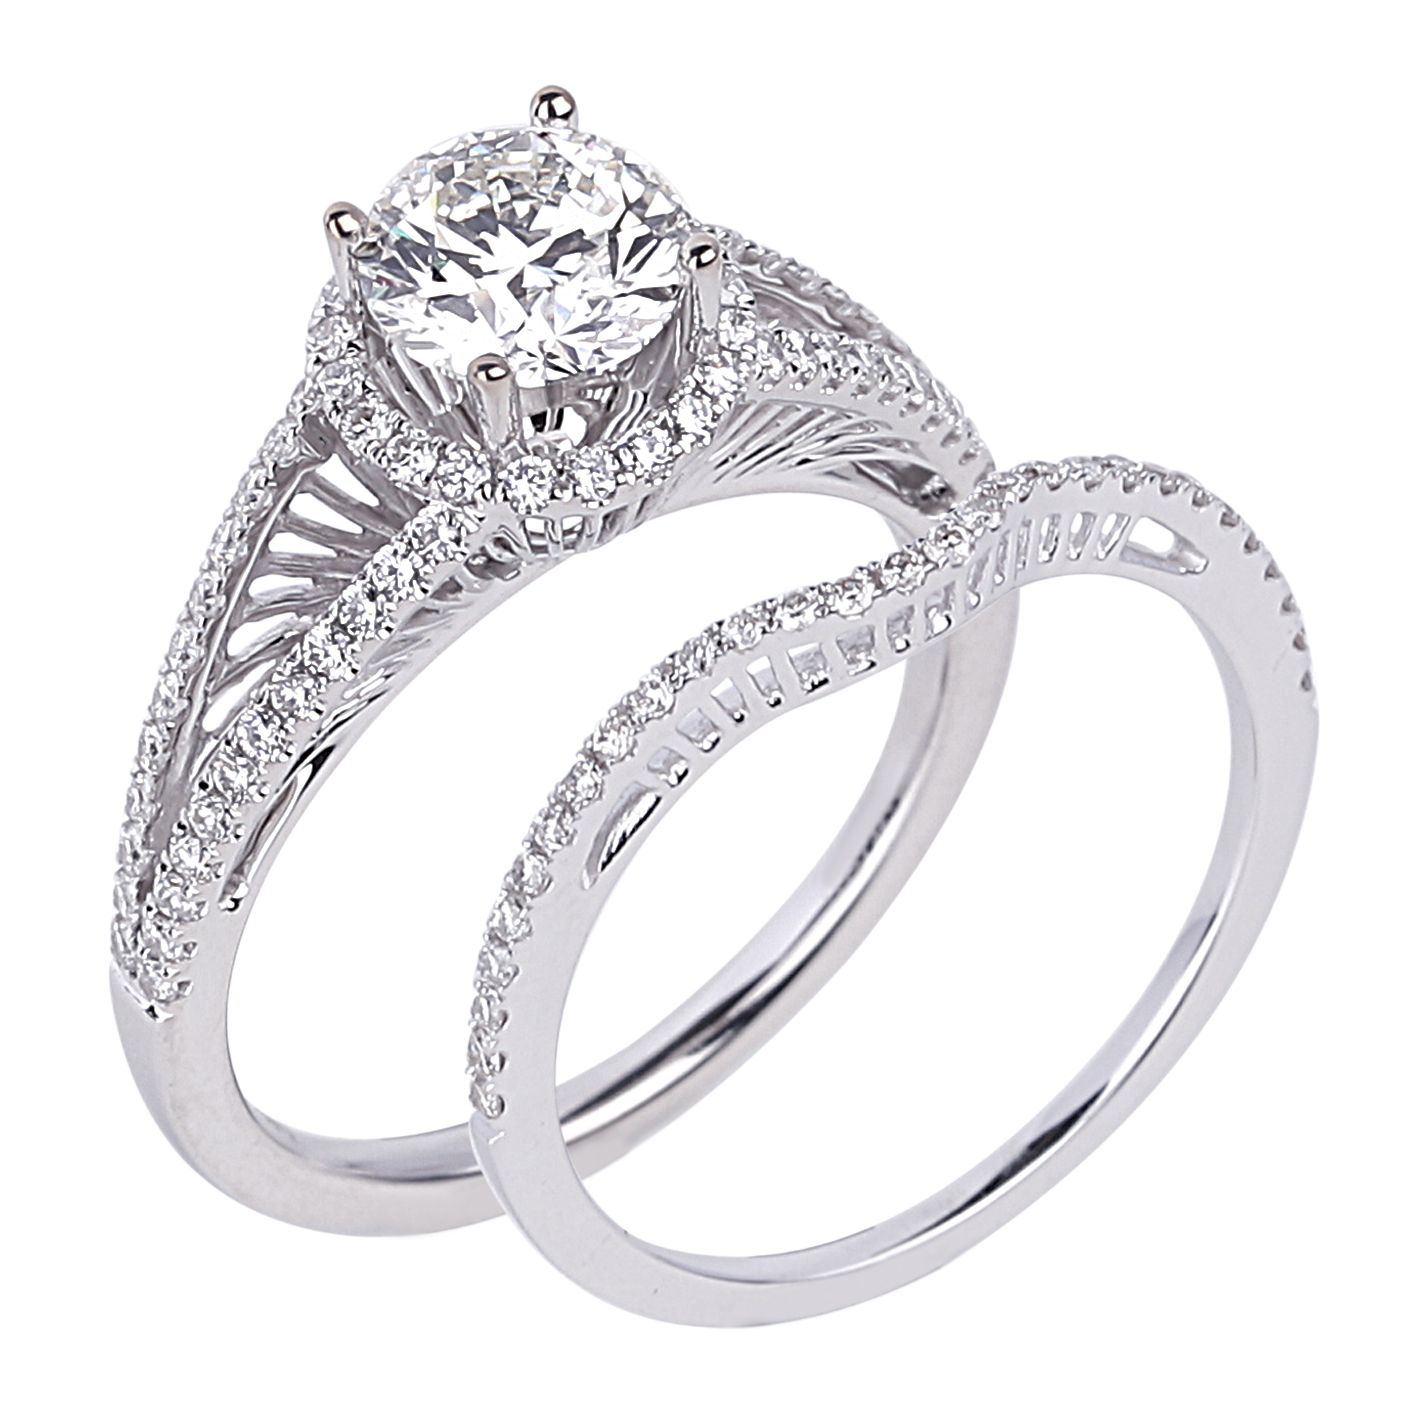 A unique halo ring fit to showcase your dazzling features available